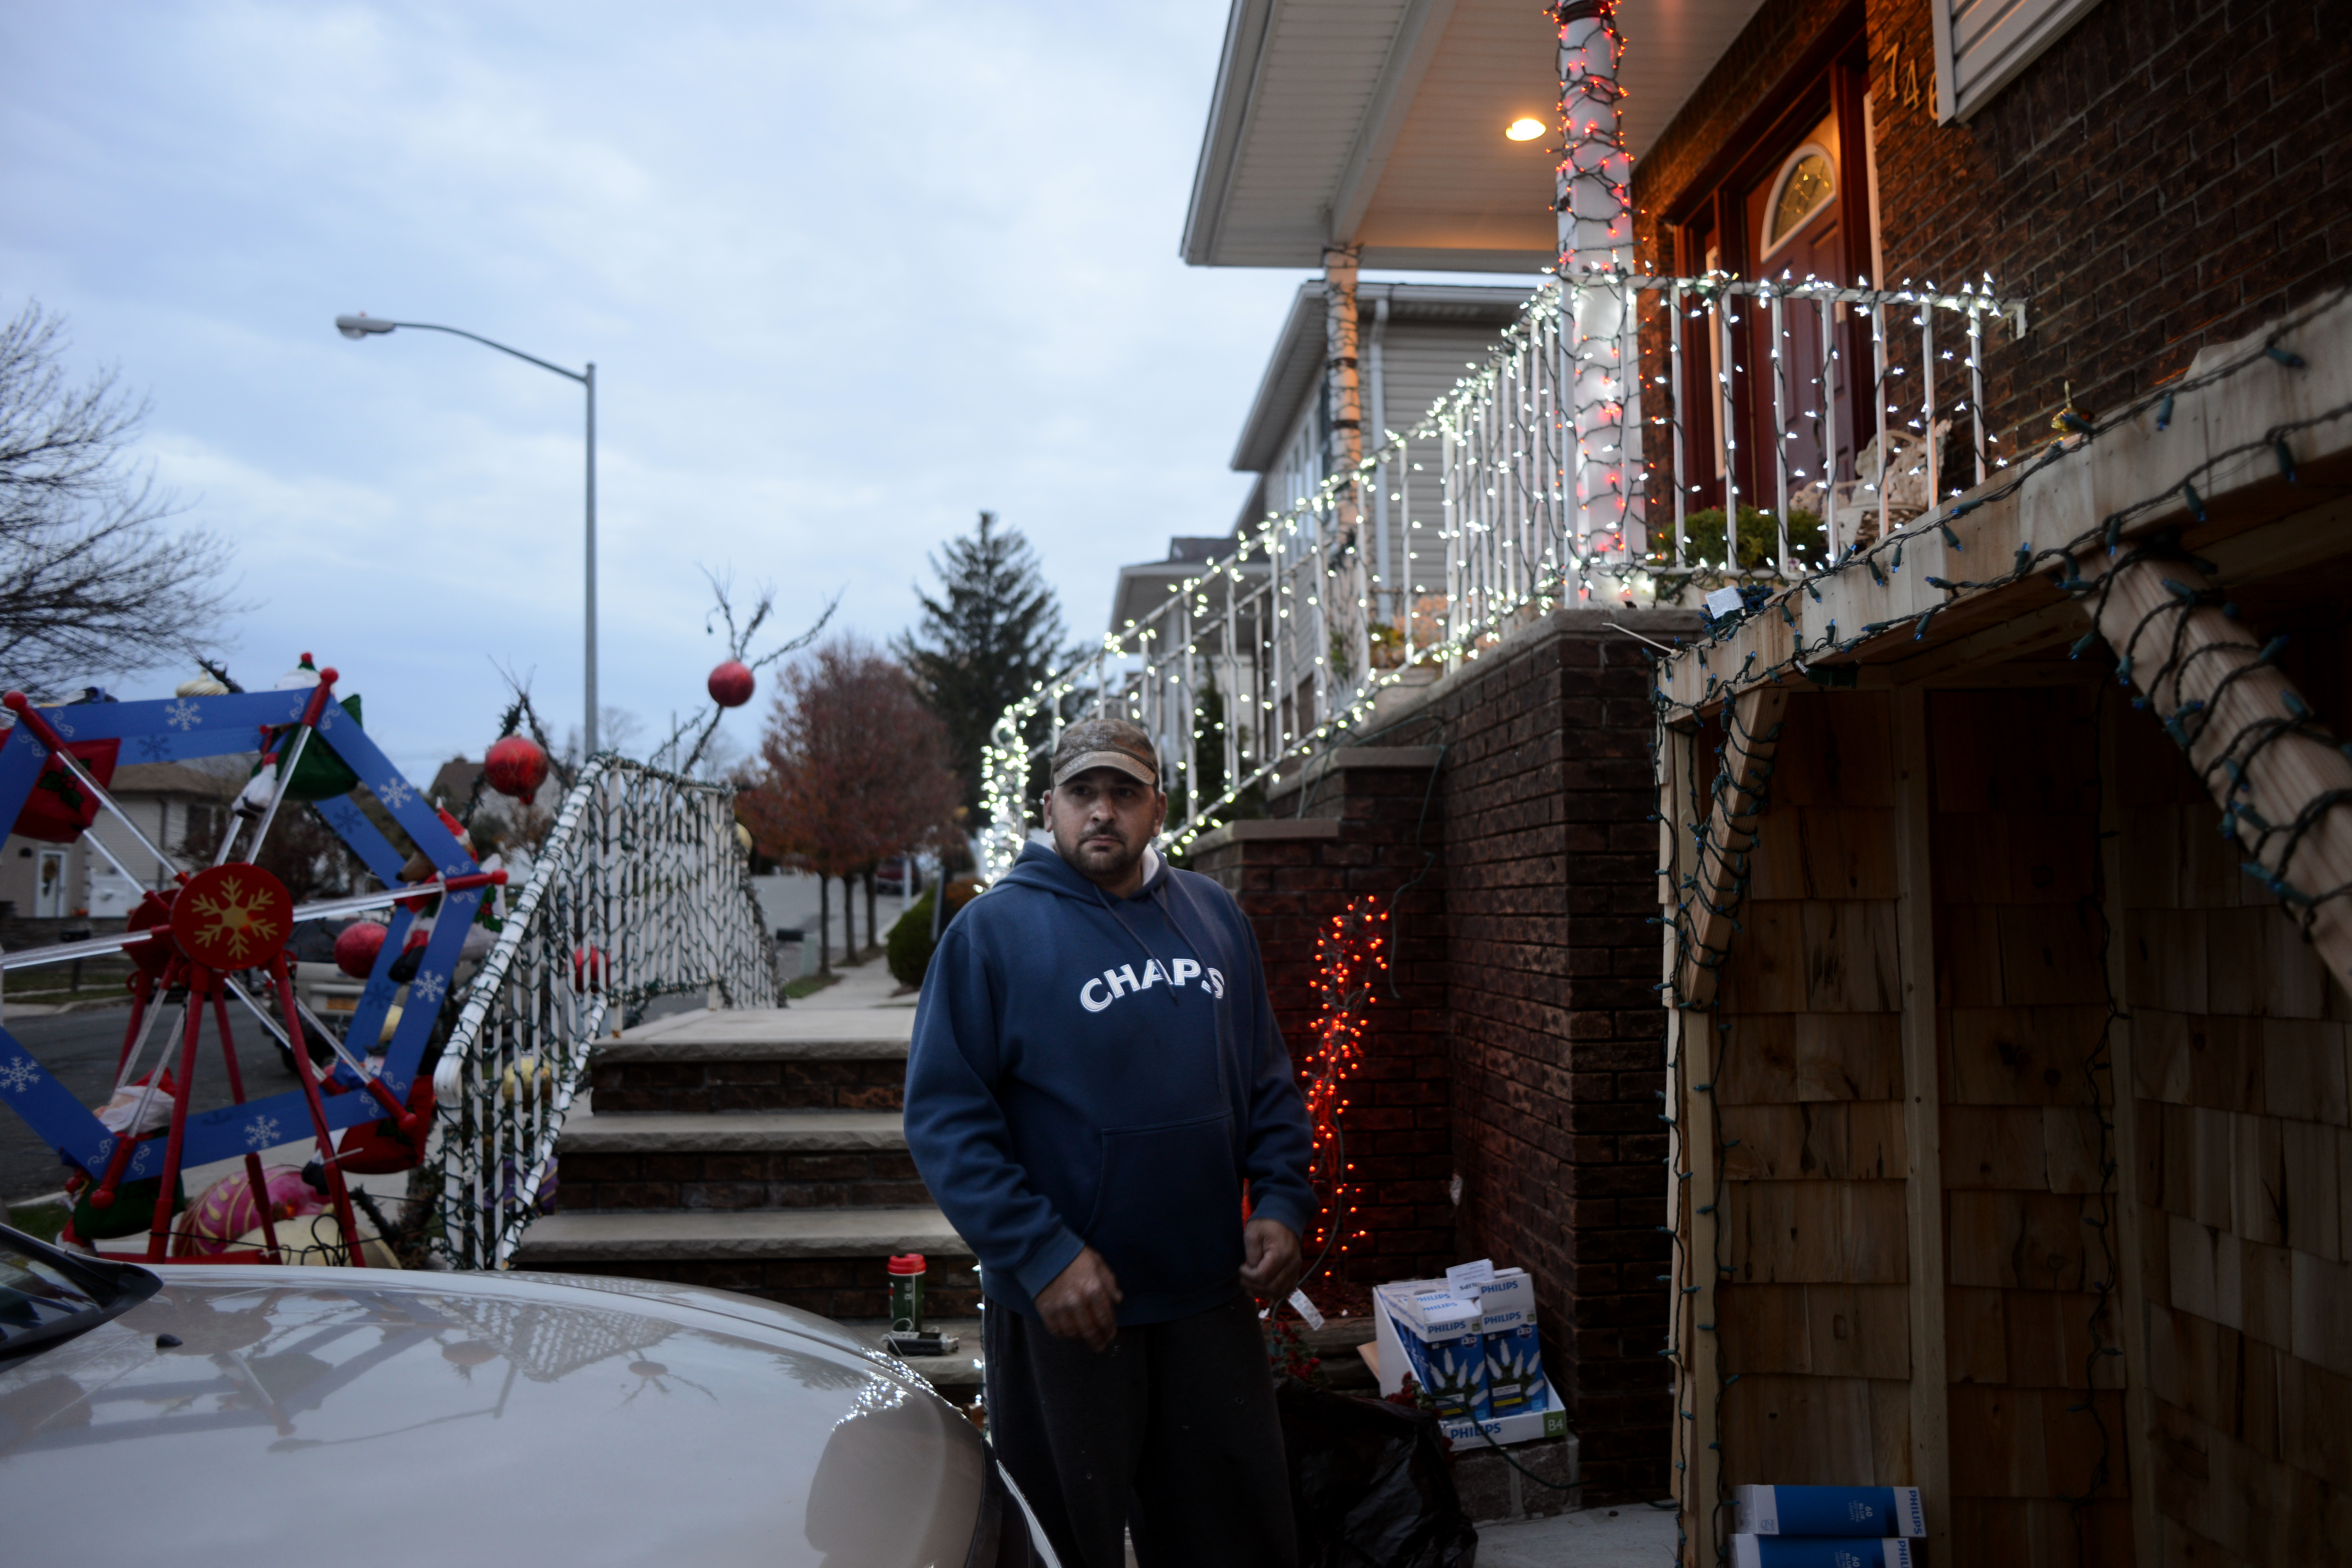 In mid-November, Sammy is already at work on his Christmas displays, some of which are lit as soon as he gets them up.